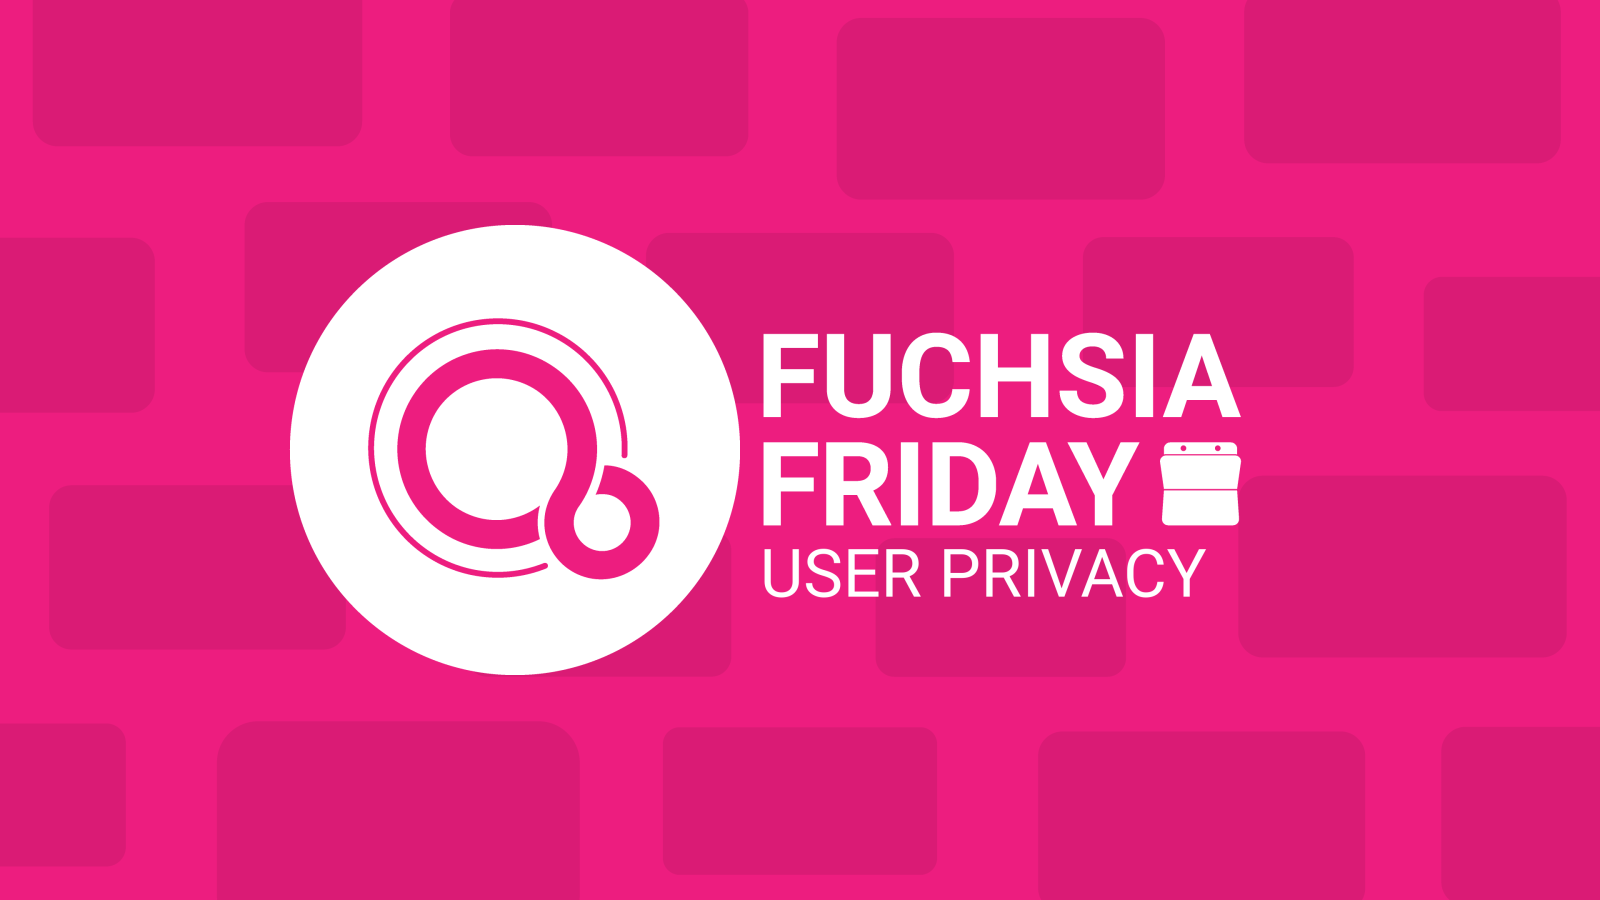 fuchsia friday respecting user privacy after all